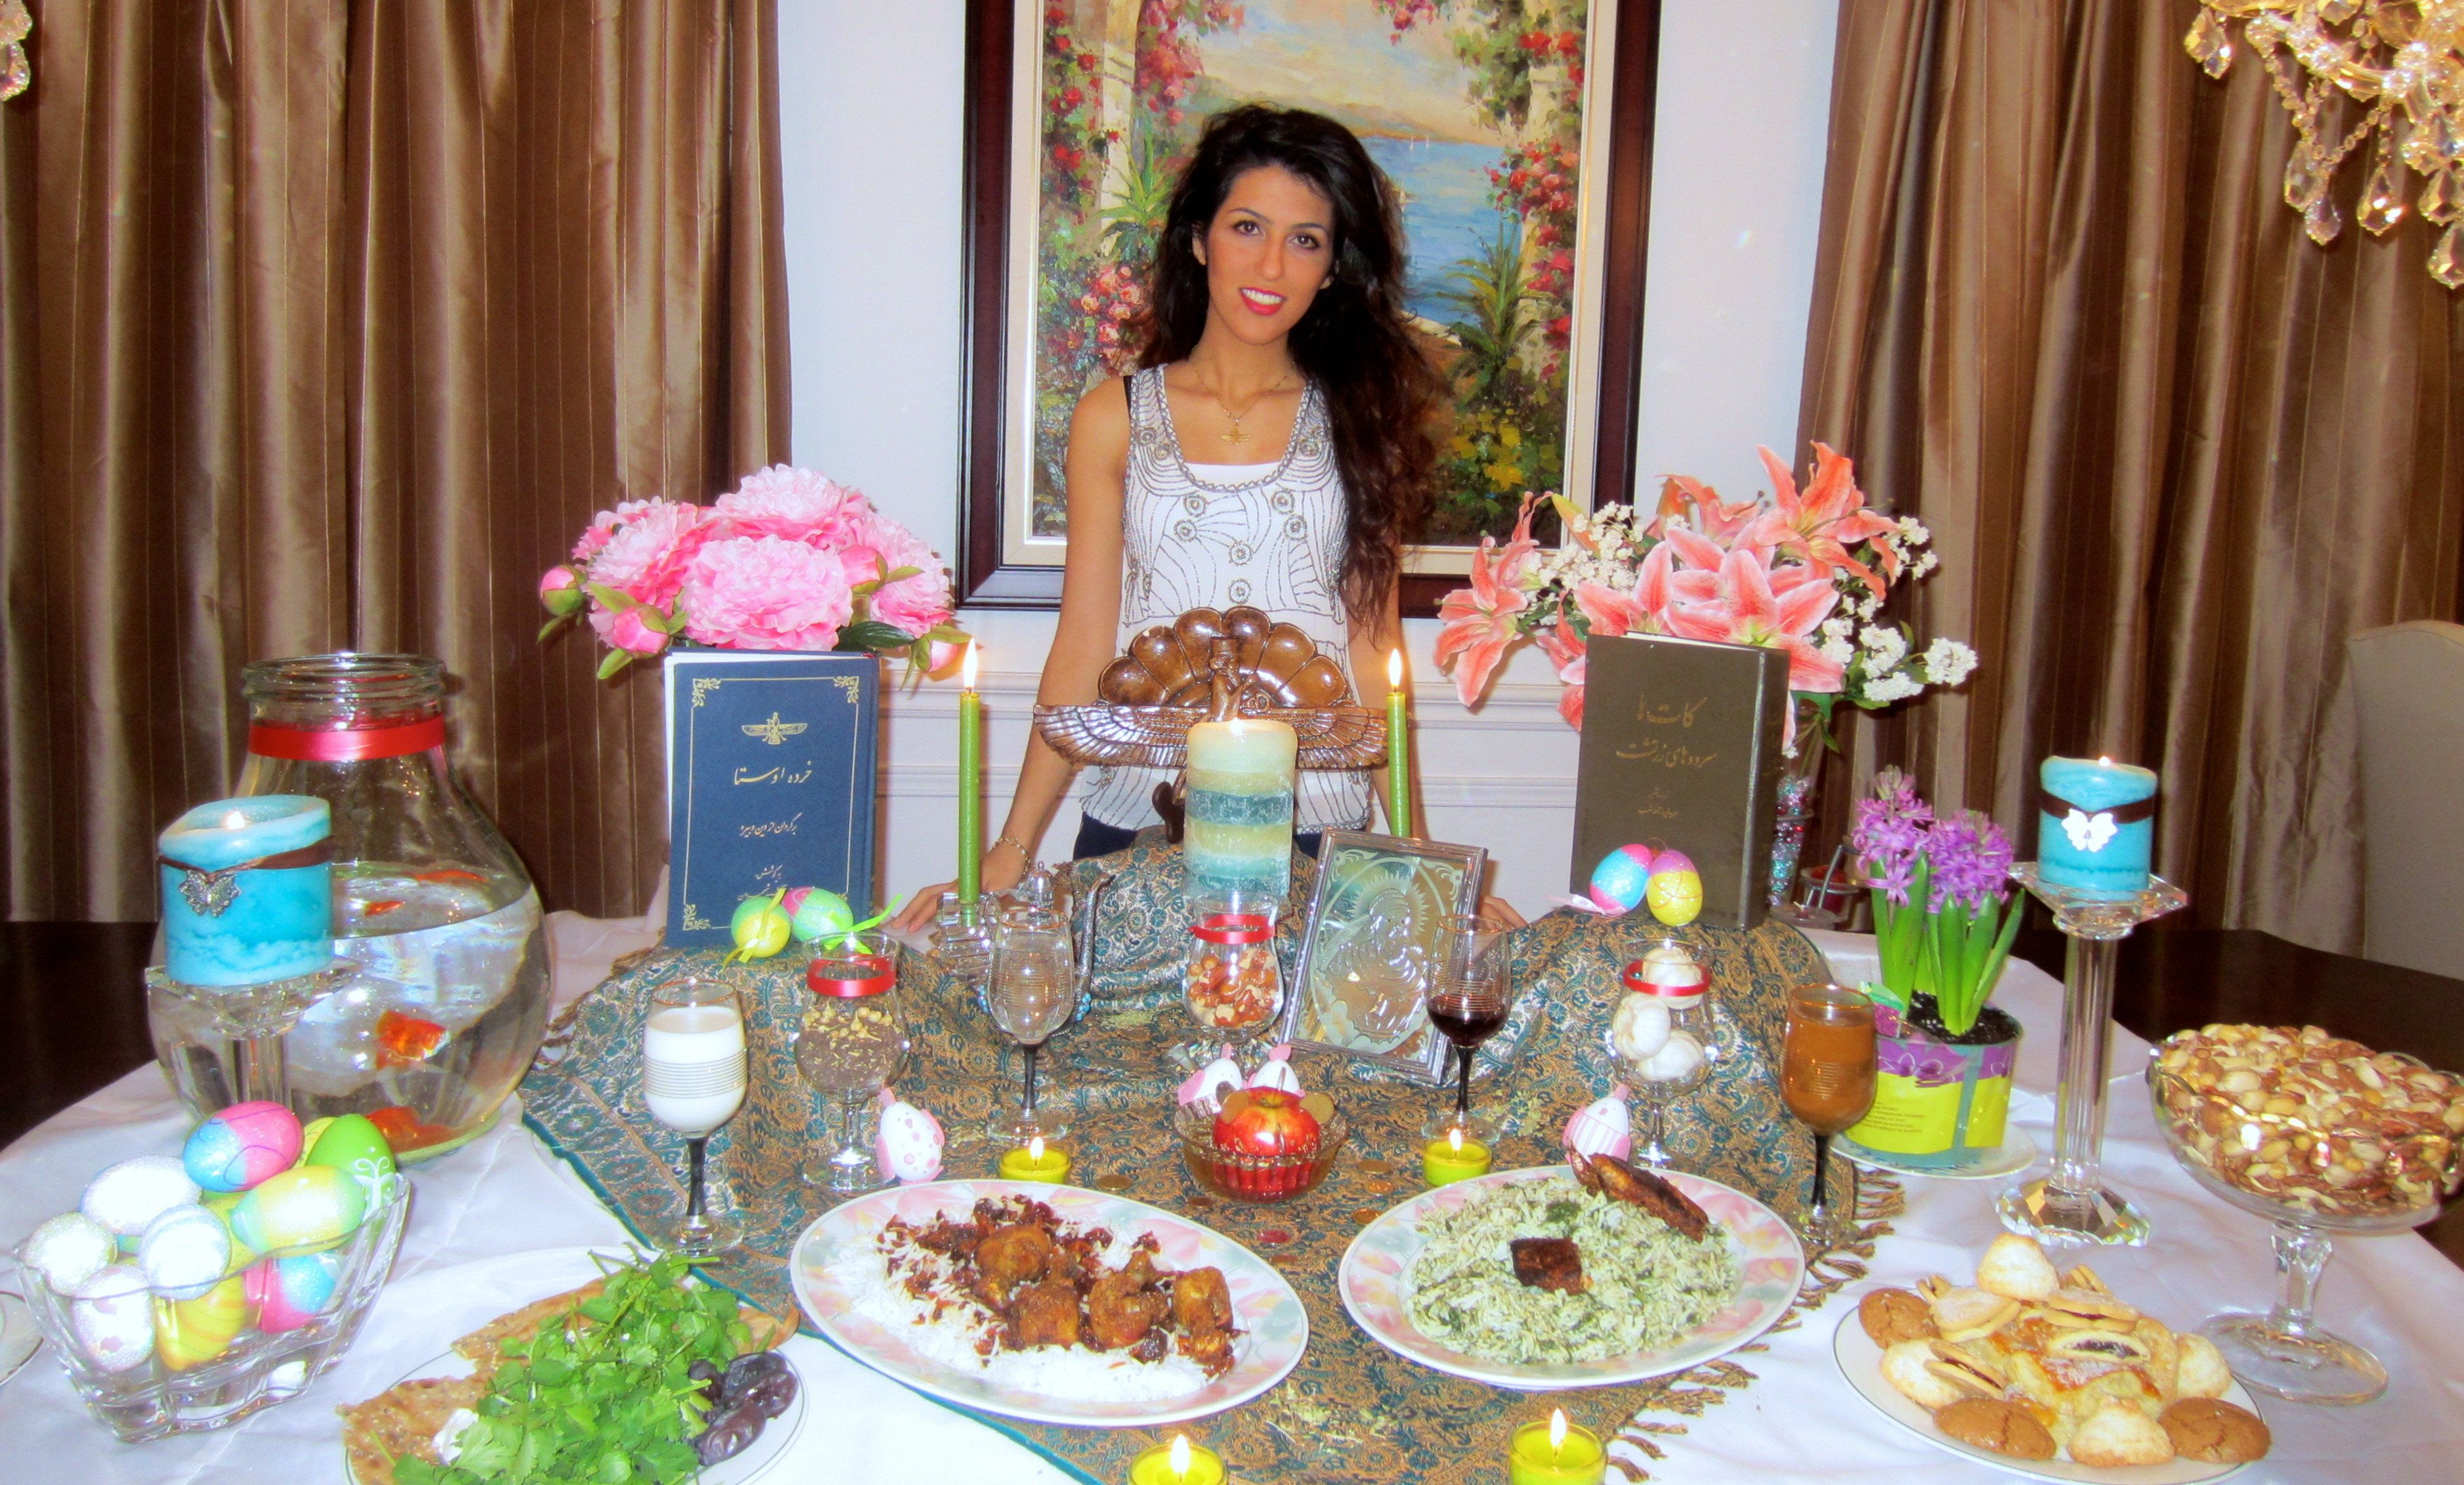 Charming Happy Nowruz: How We Celebrate The Persian New Year